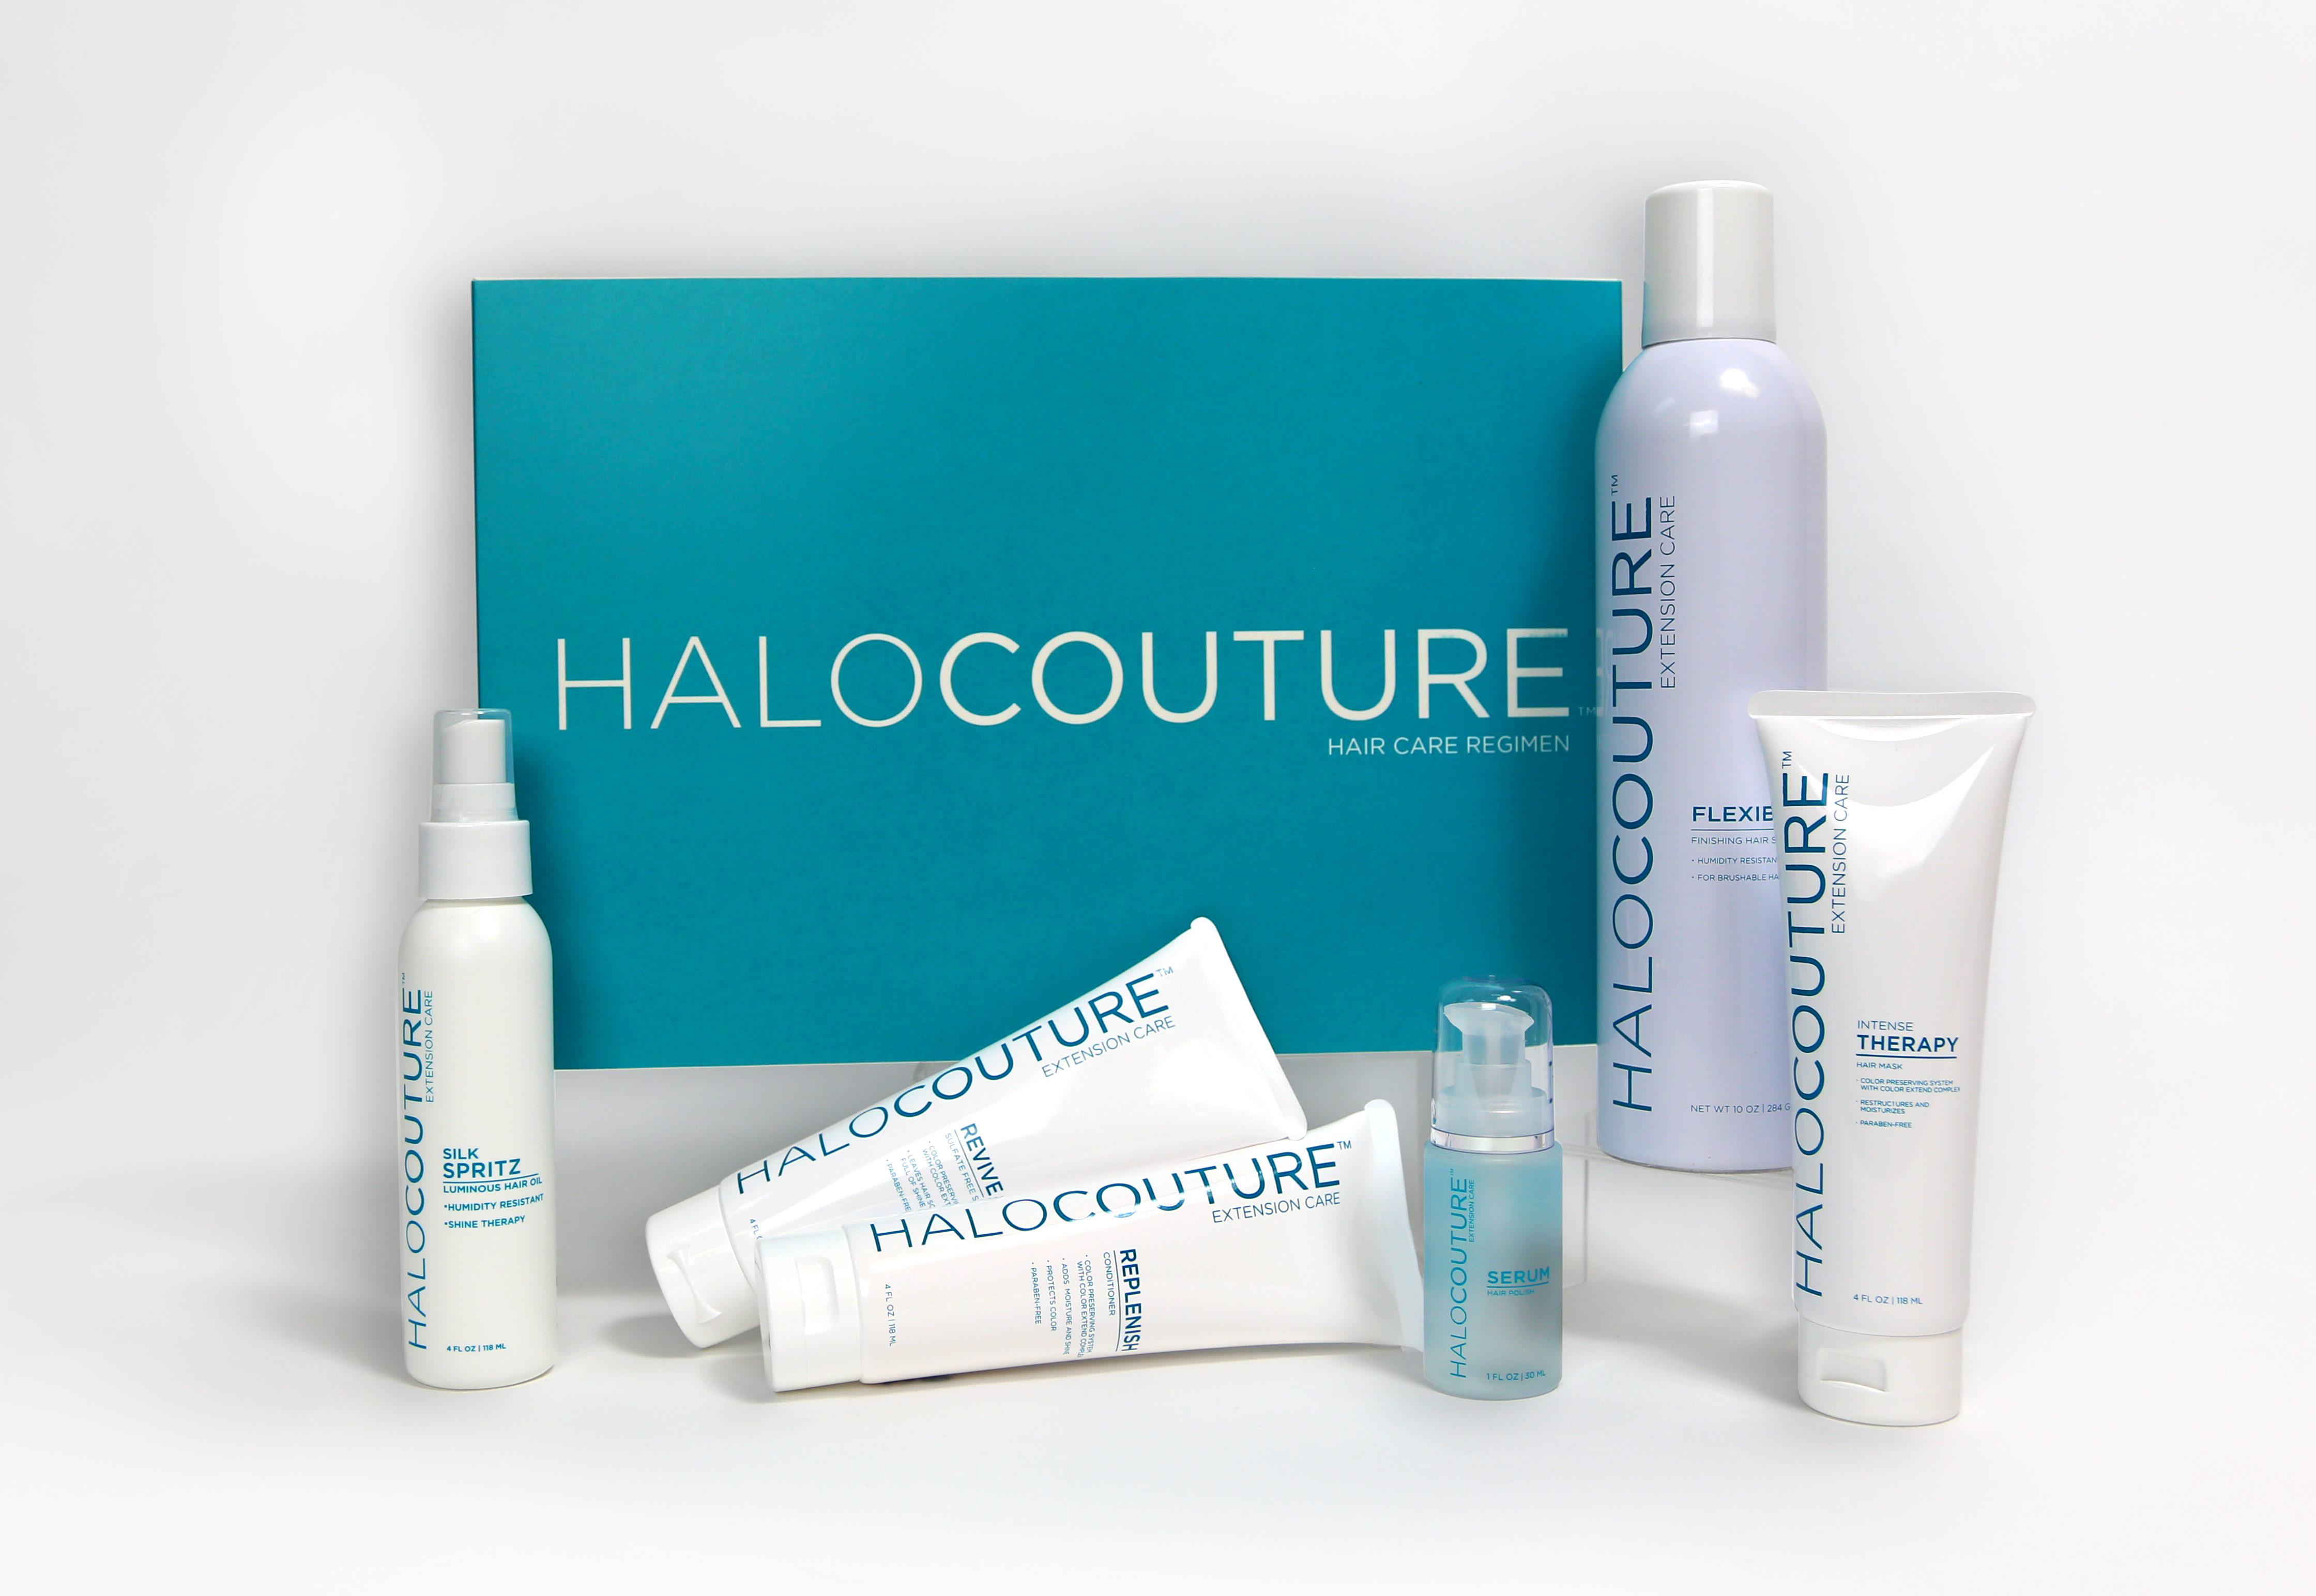 The six products in the HaloCouture Collection, which include a shampoo, conditioner, intensive hair mask, serum, silk spritz, and hairspray.